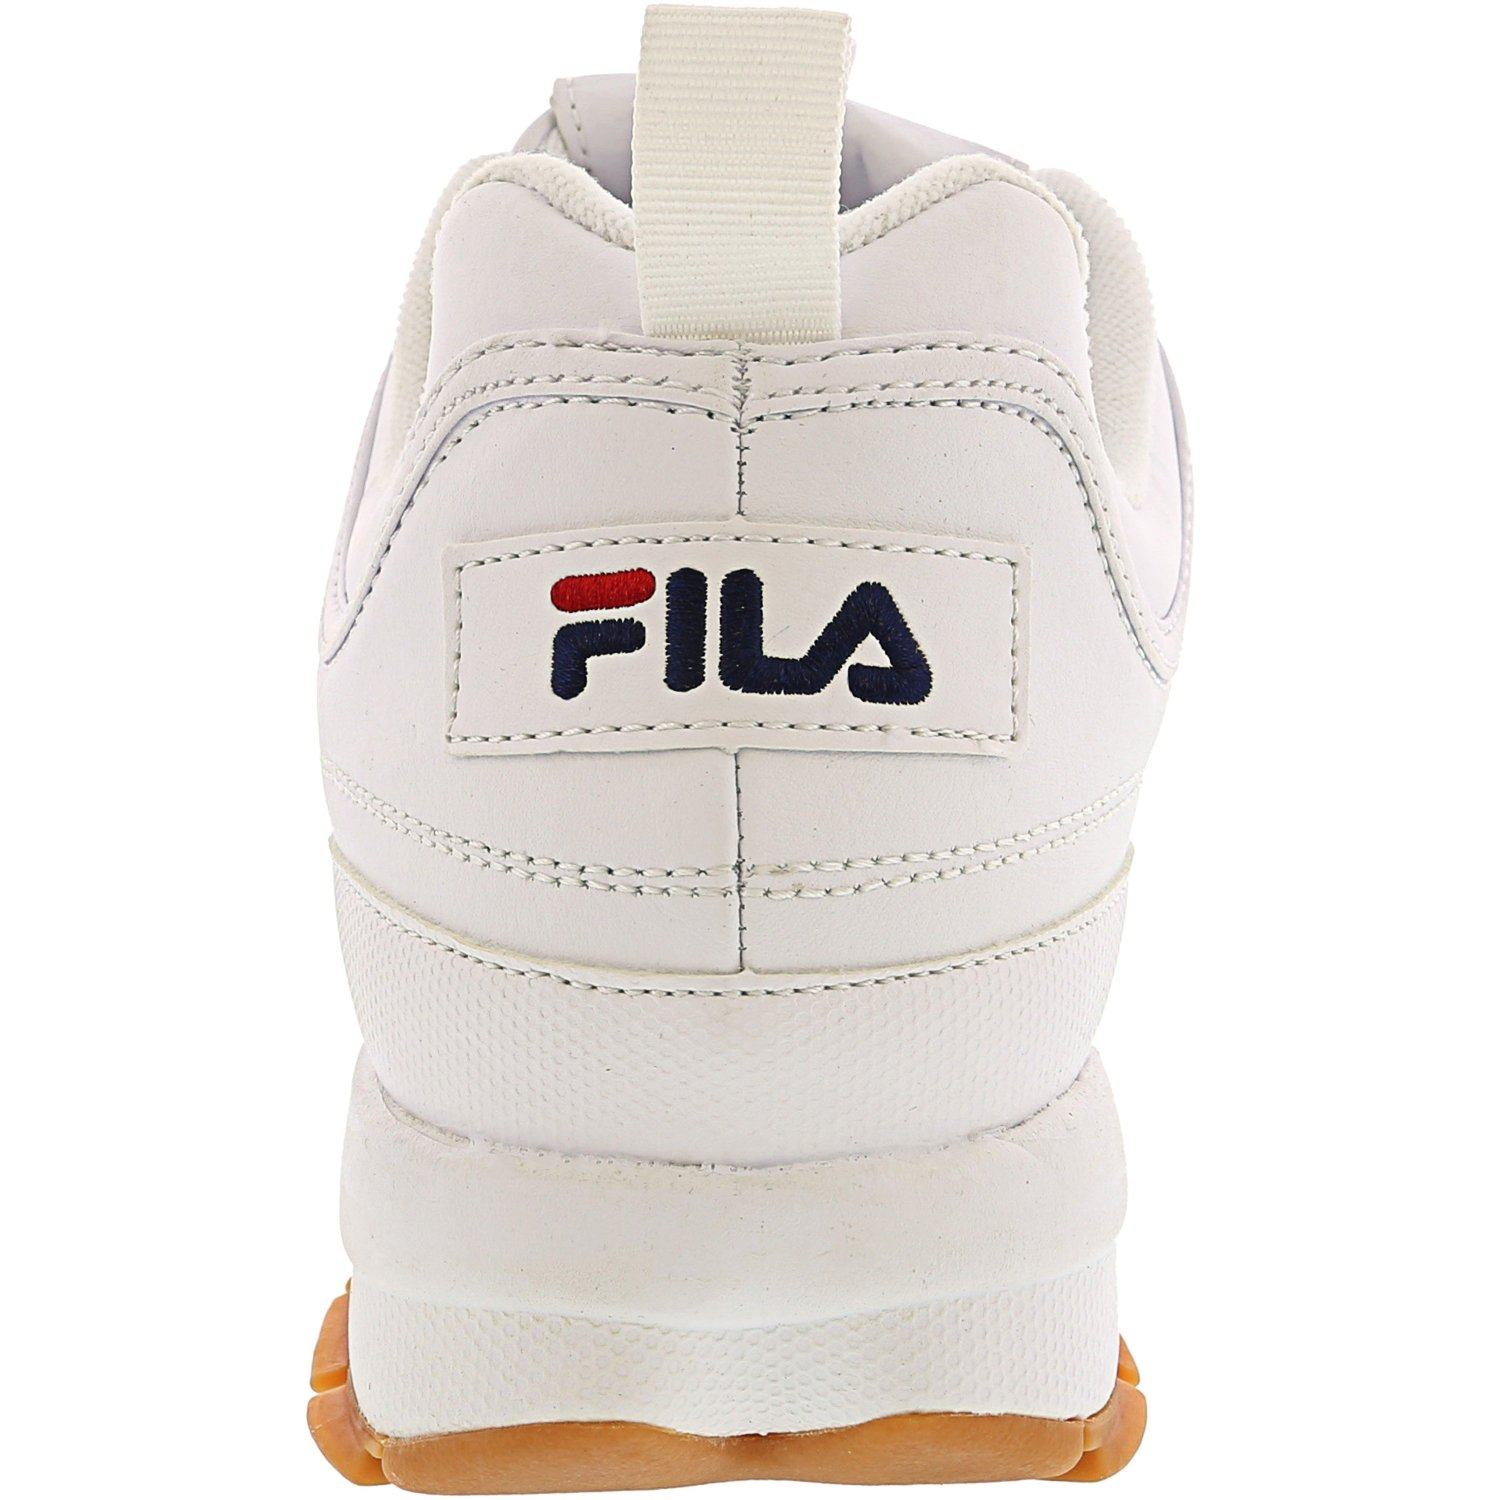 Fila-Men-039-s-Disruptor-Ii-Premium-Ankle-High-Patent-Leather-Fashion-Sneaker thumbnail 27